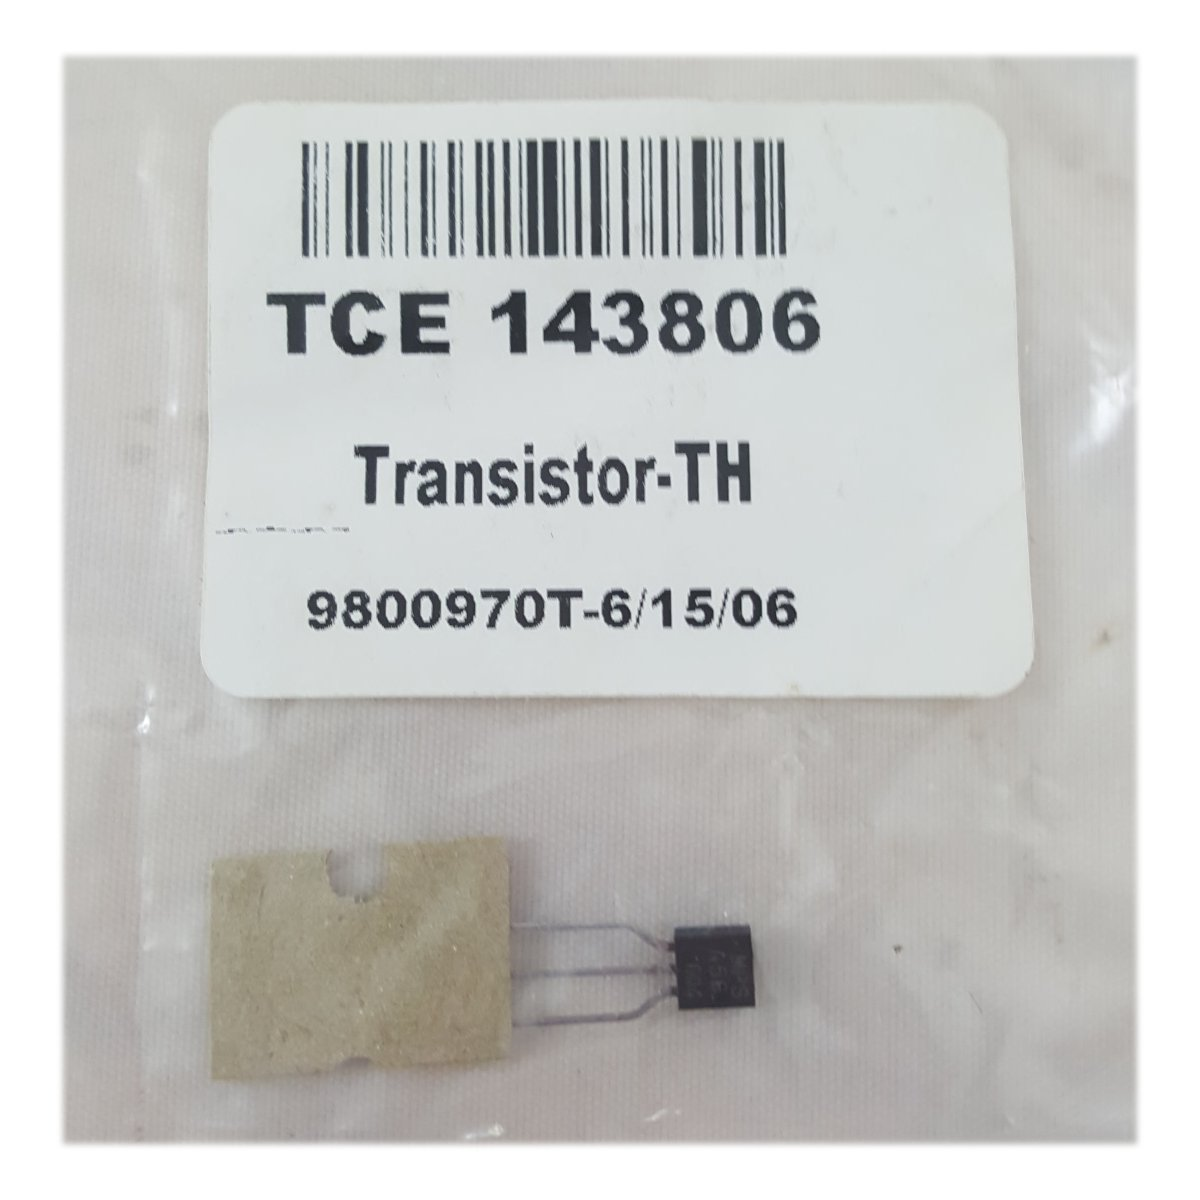 RCA VCR Replacement Transistor Part No. TCE 143806